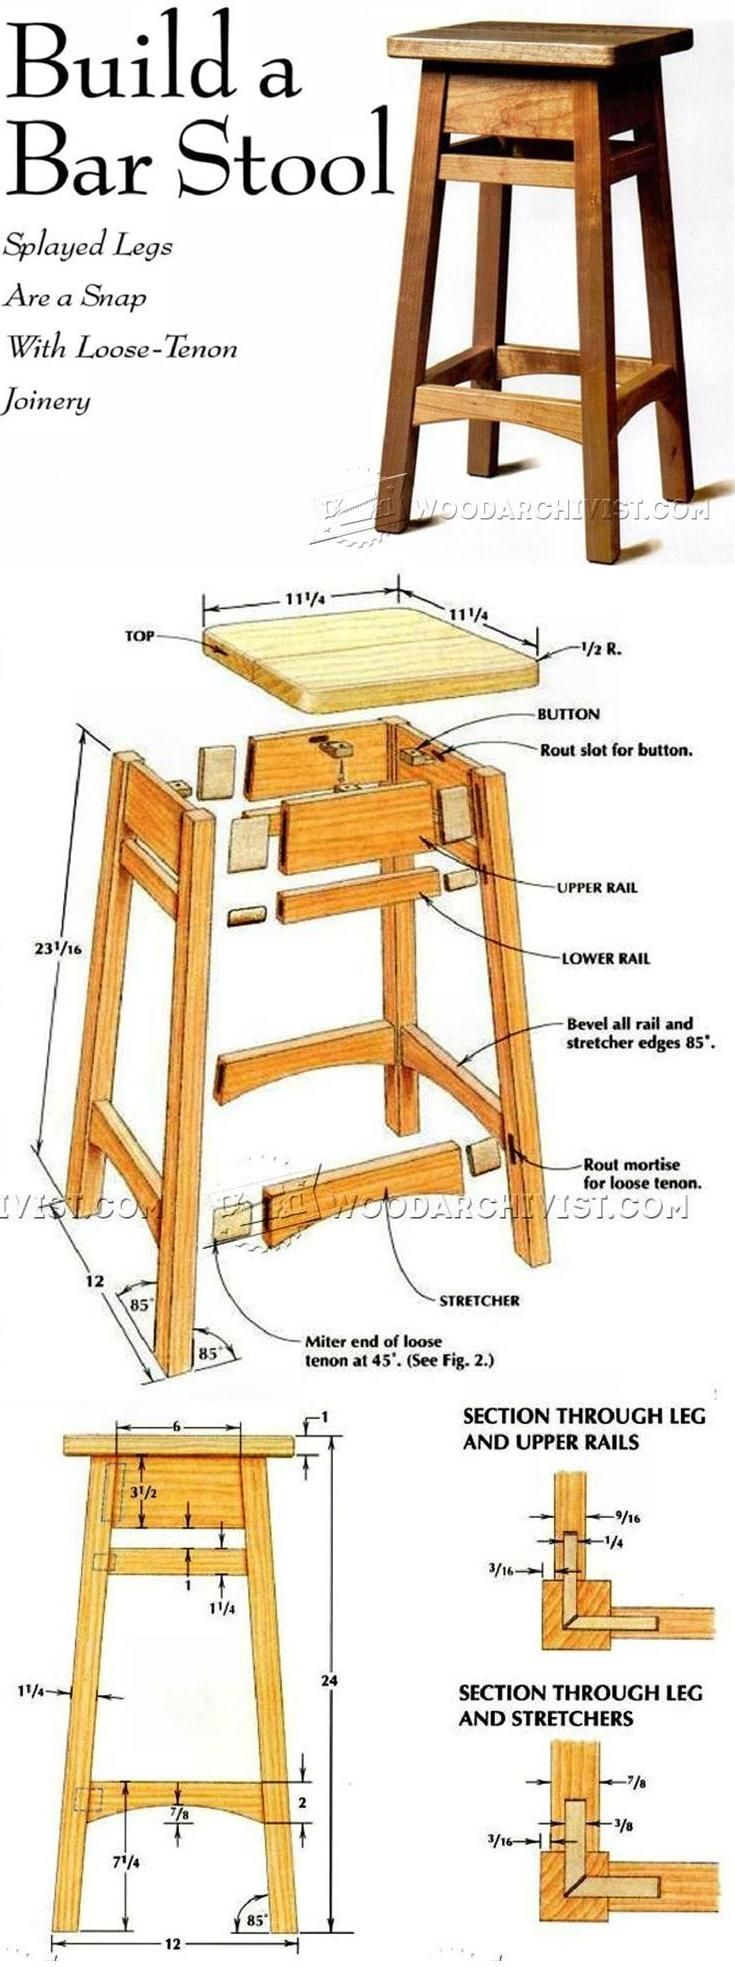 DIY Bar Stool   Furniture Plans and Projects   WoodArchivist com. DIY Bar Stool   Furniture Plans and Projects   WoodArchivist com